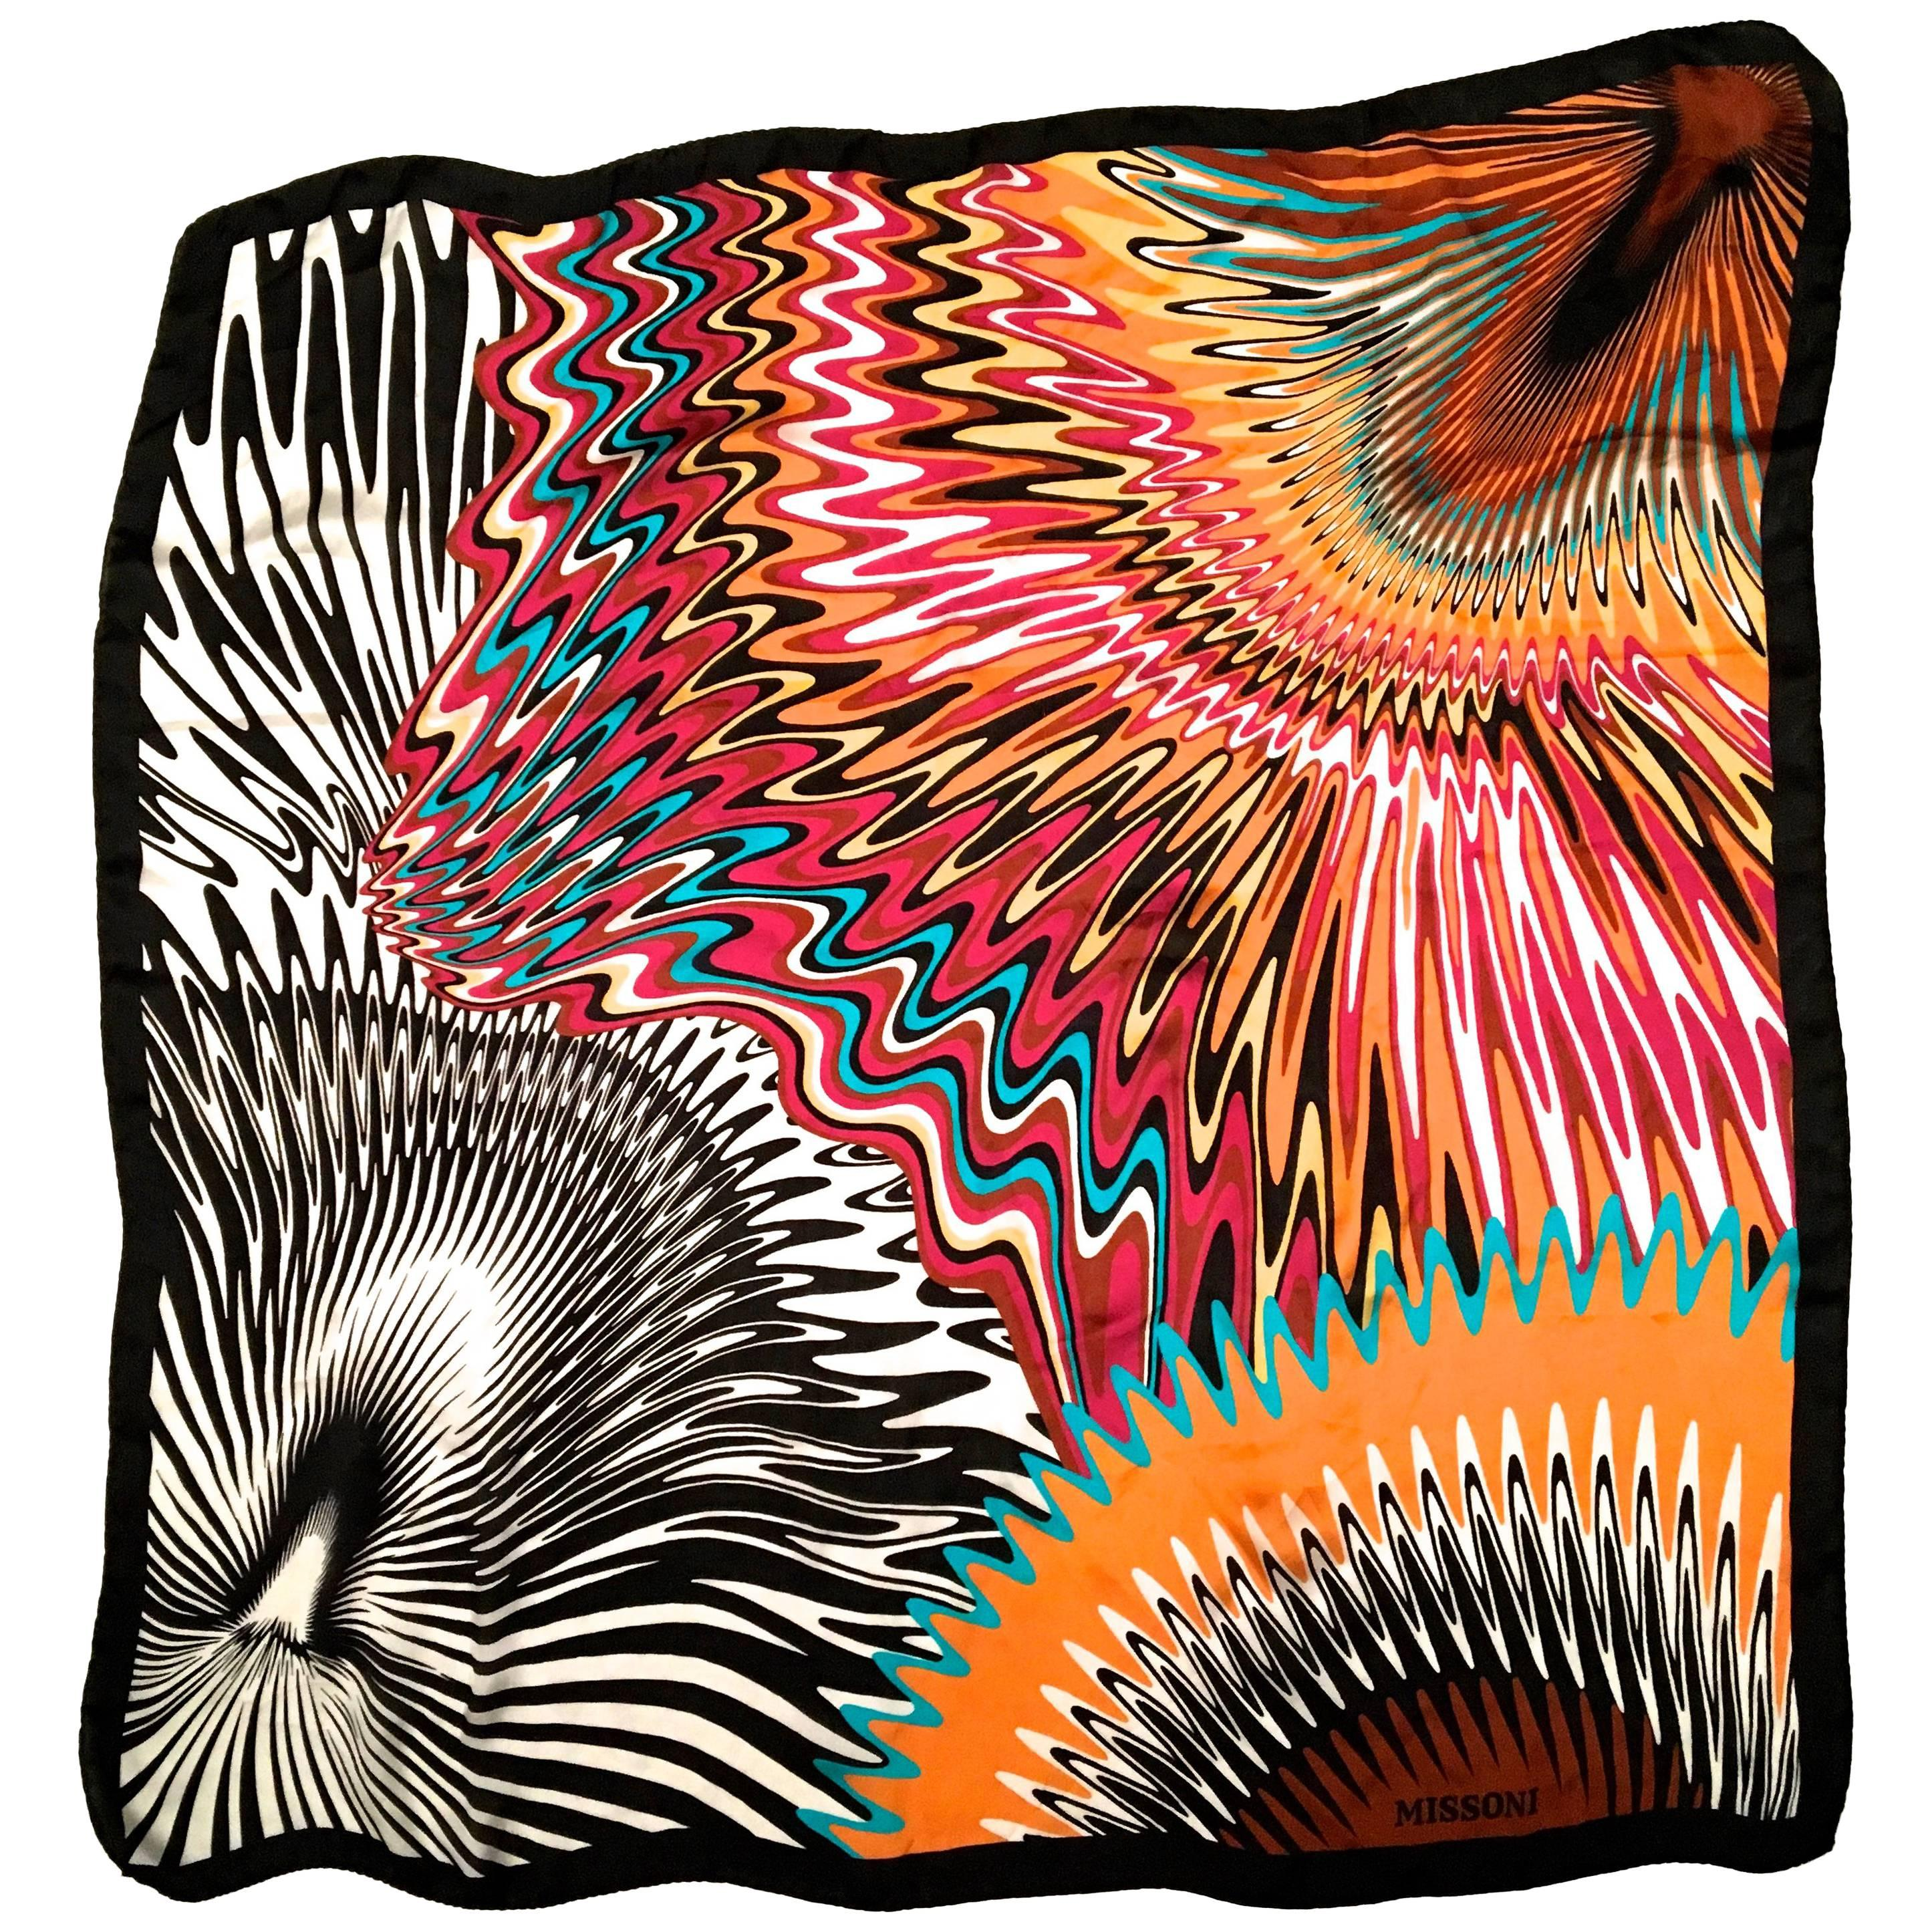 trends missoni adler decorations curated for fall decorate pescara couches throw design pillow as to use kravet pillows